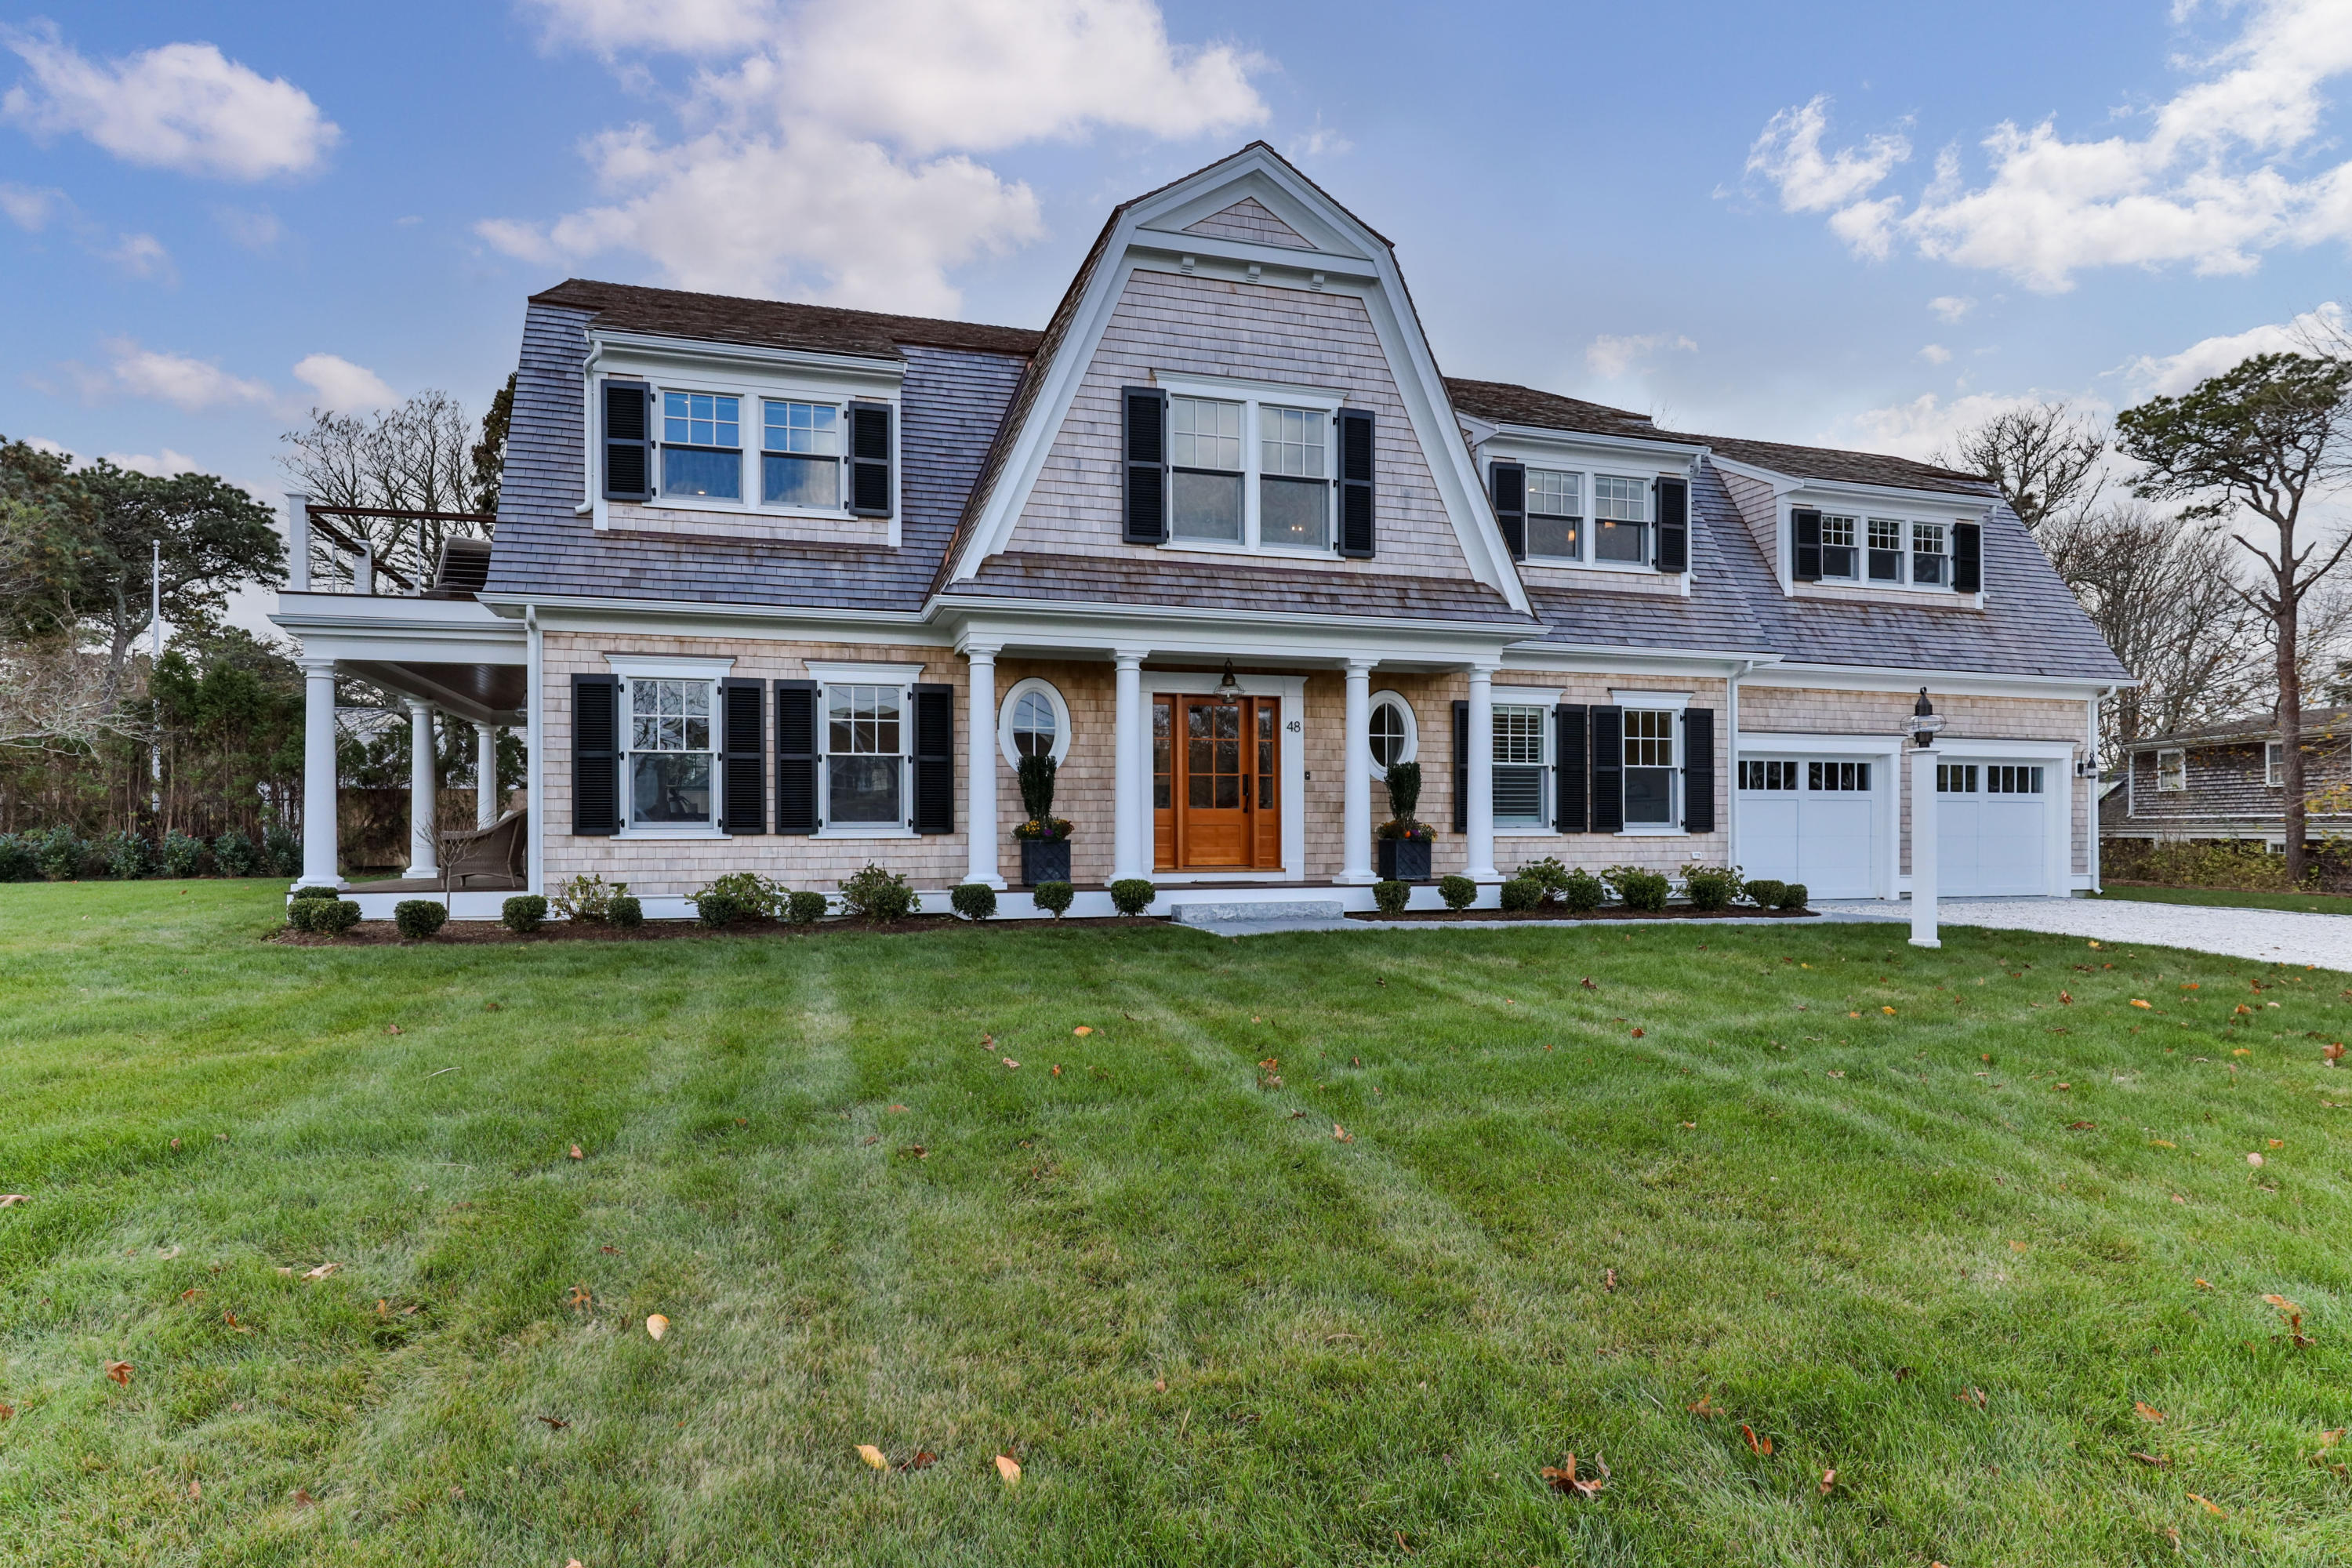 click to view more details 48 Hillcrest Road, North Chatham, MA 02650